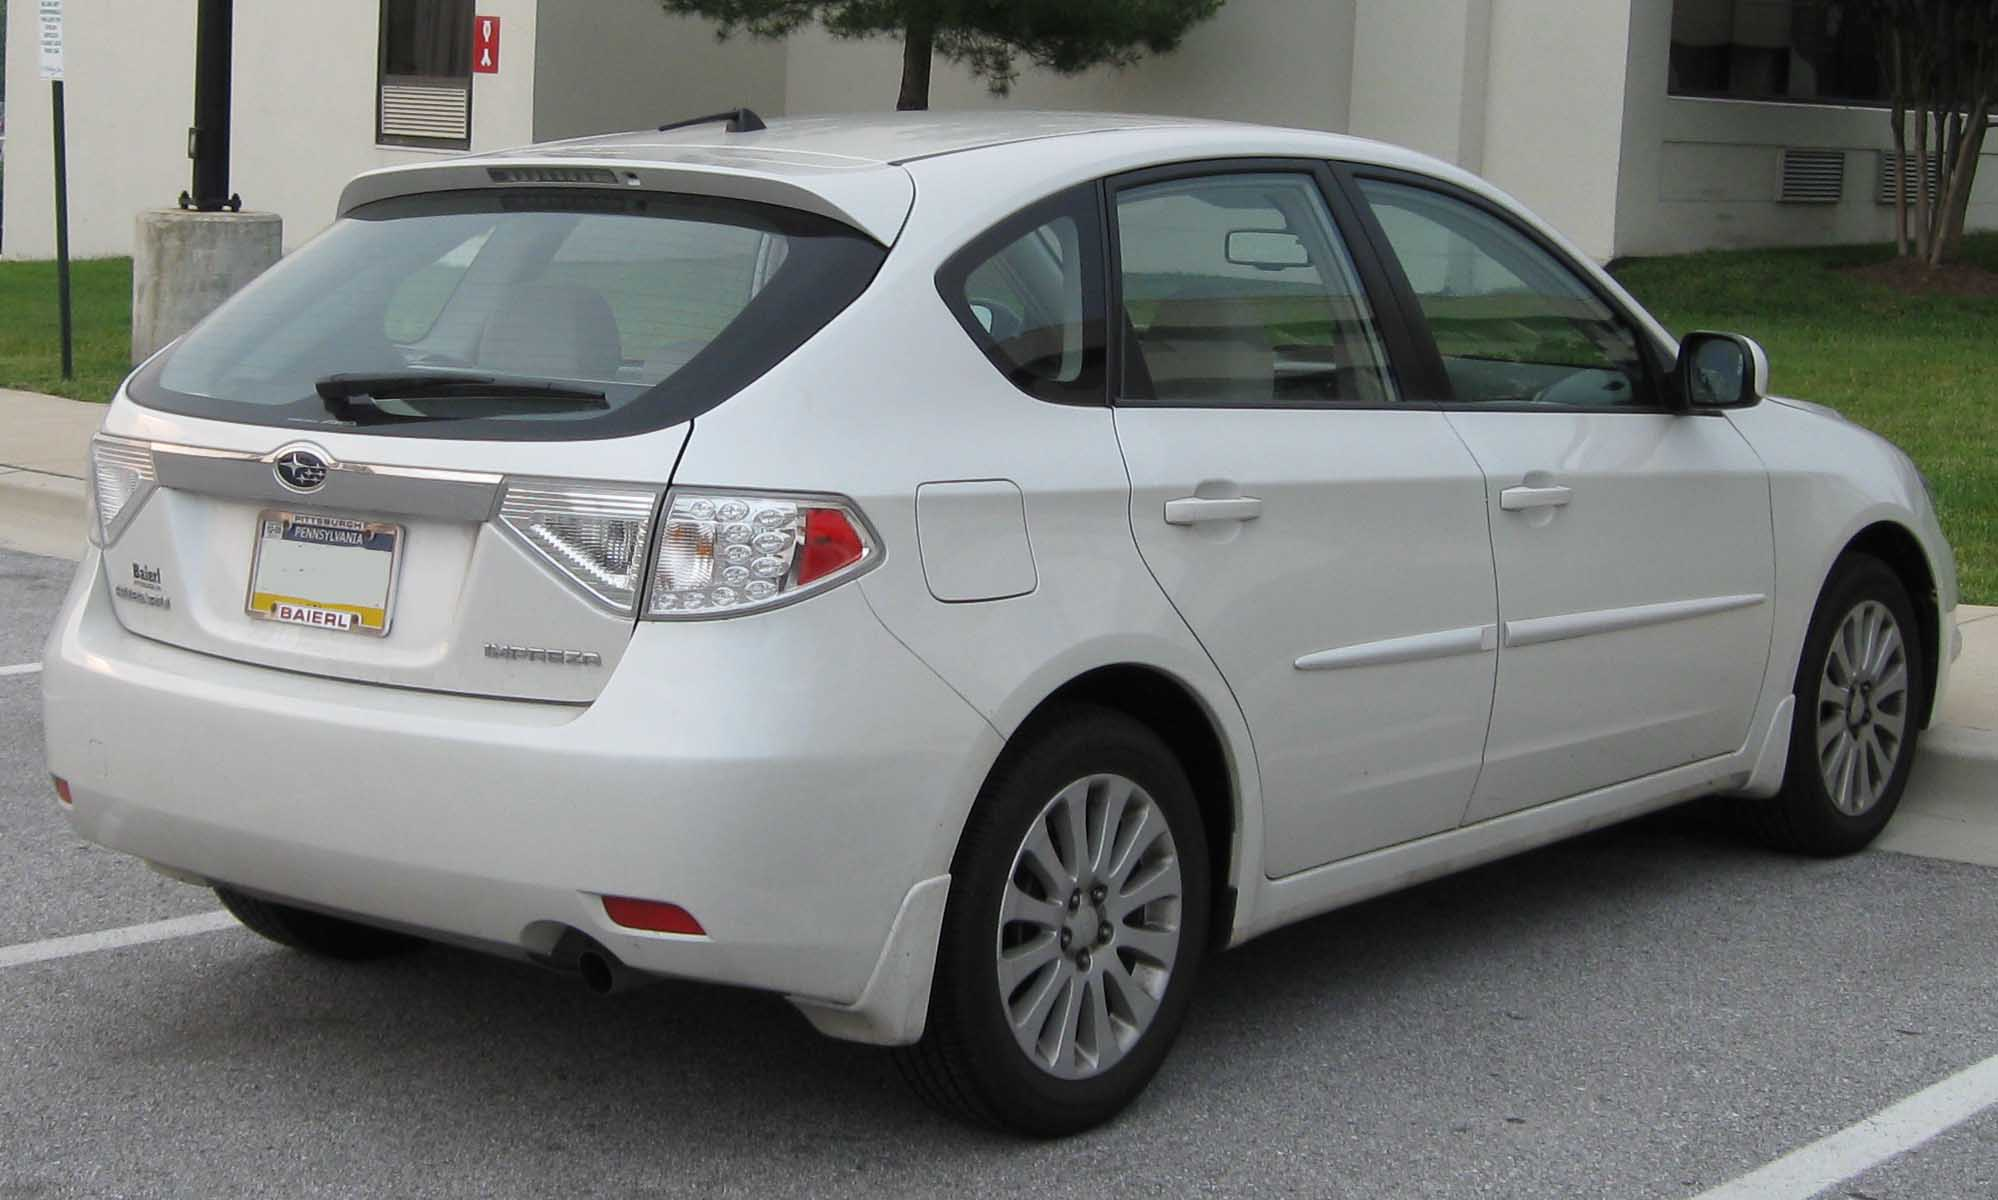 file:2008 subaru impreza 2.5i hatch rear - wikimedia commons